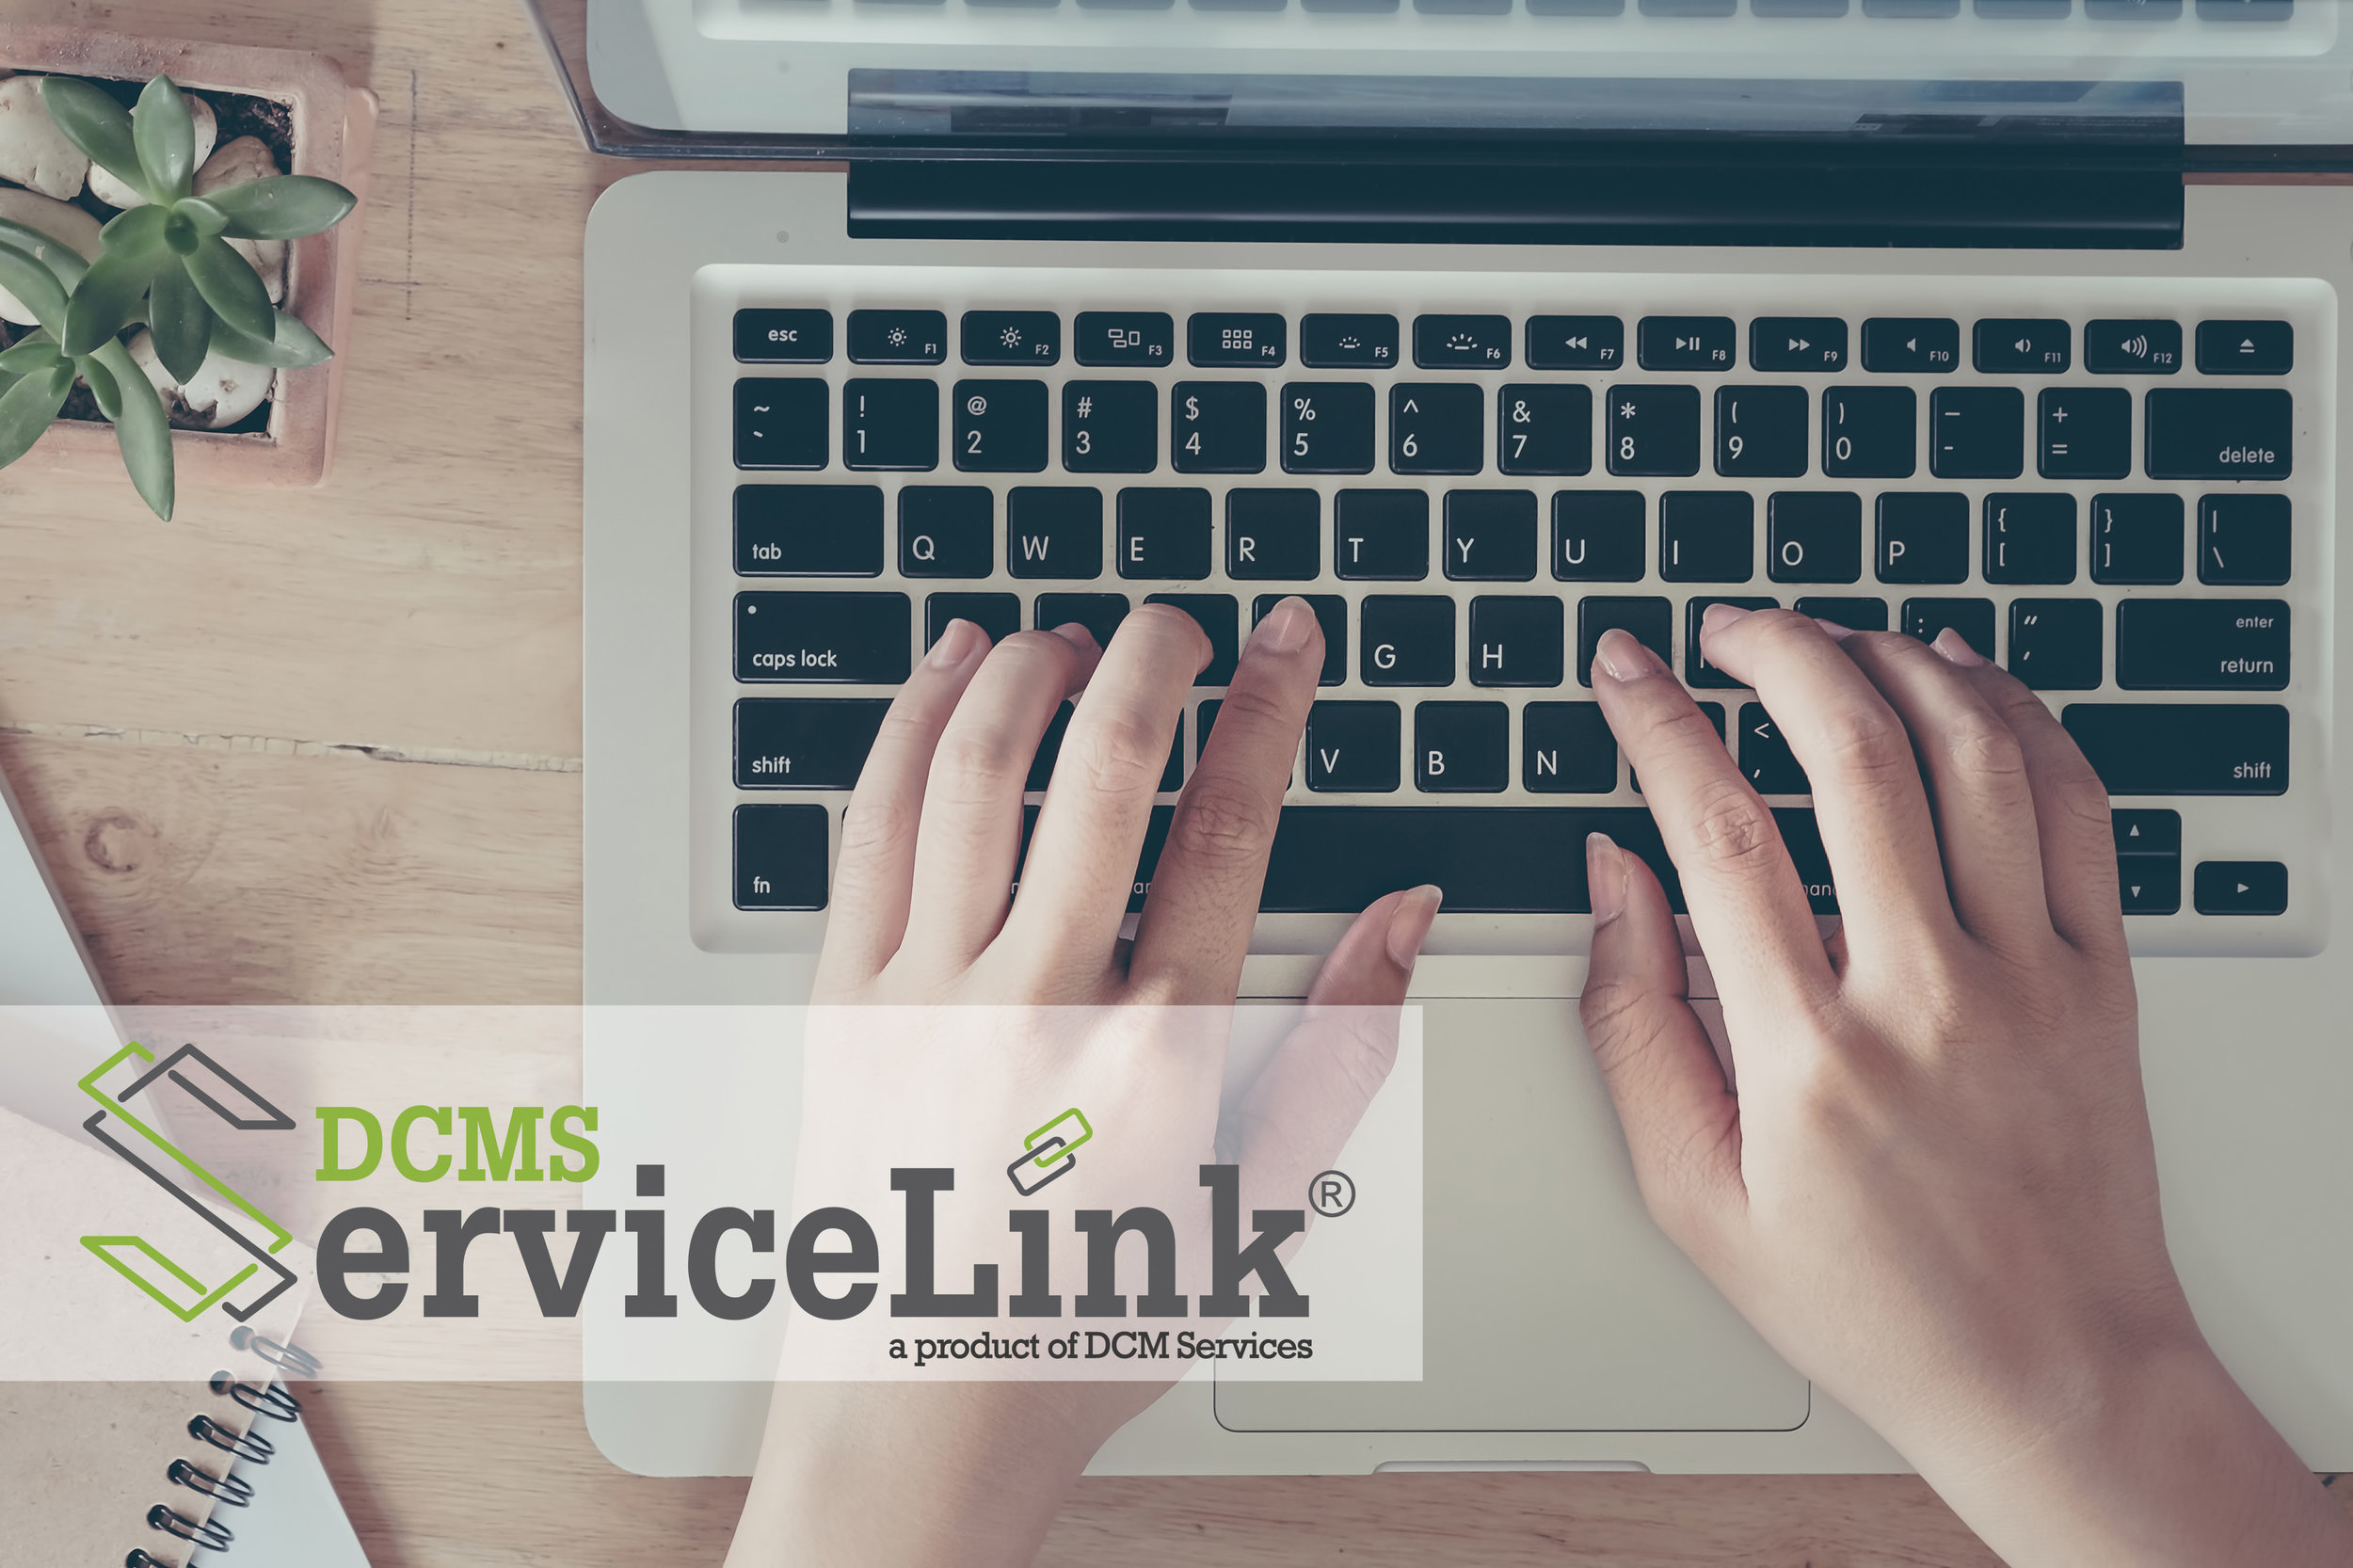 DCMS ServiceLink® - Resolve an AccountLog in to DCMS ServiceLink to view and resolve an account.